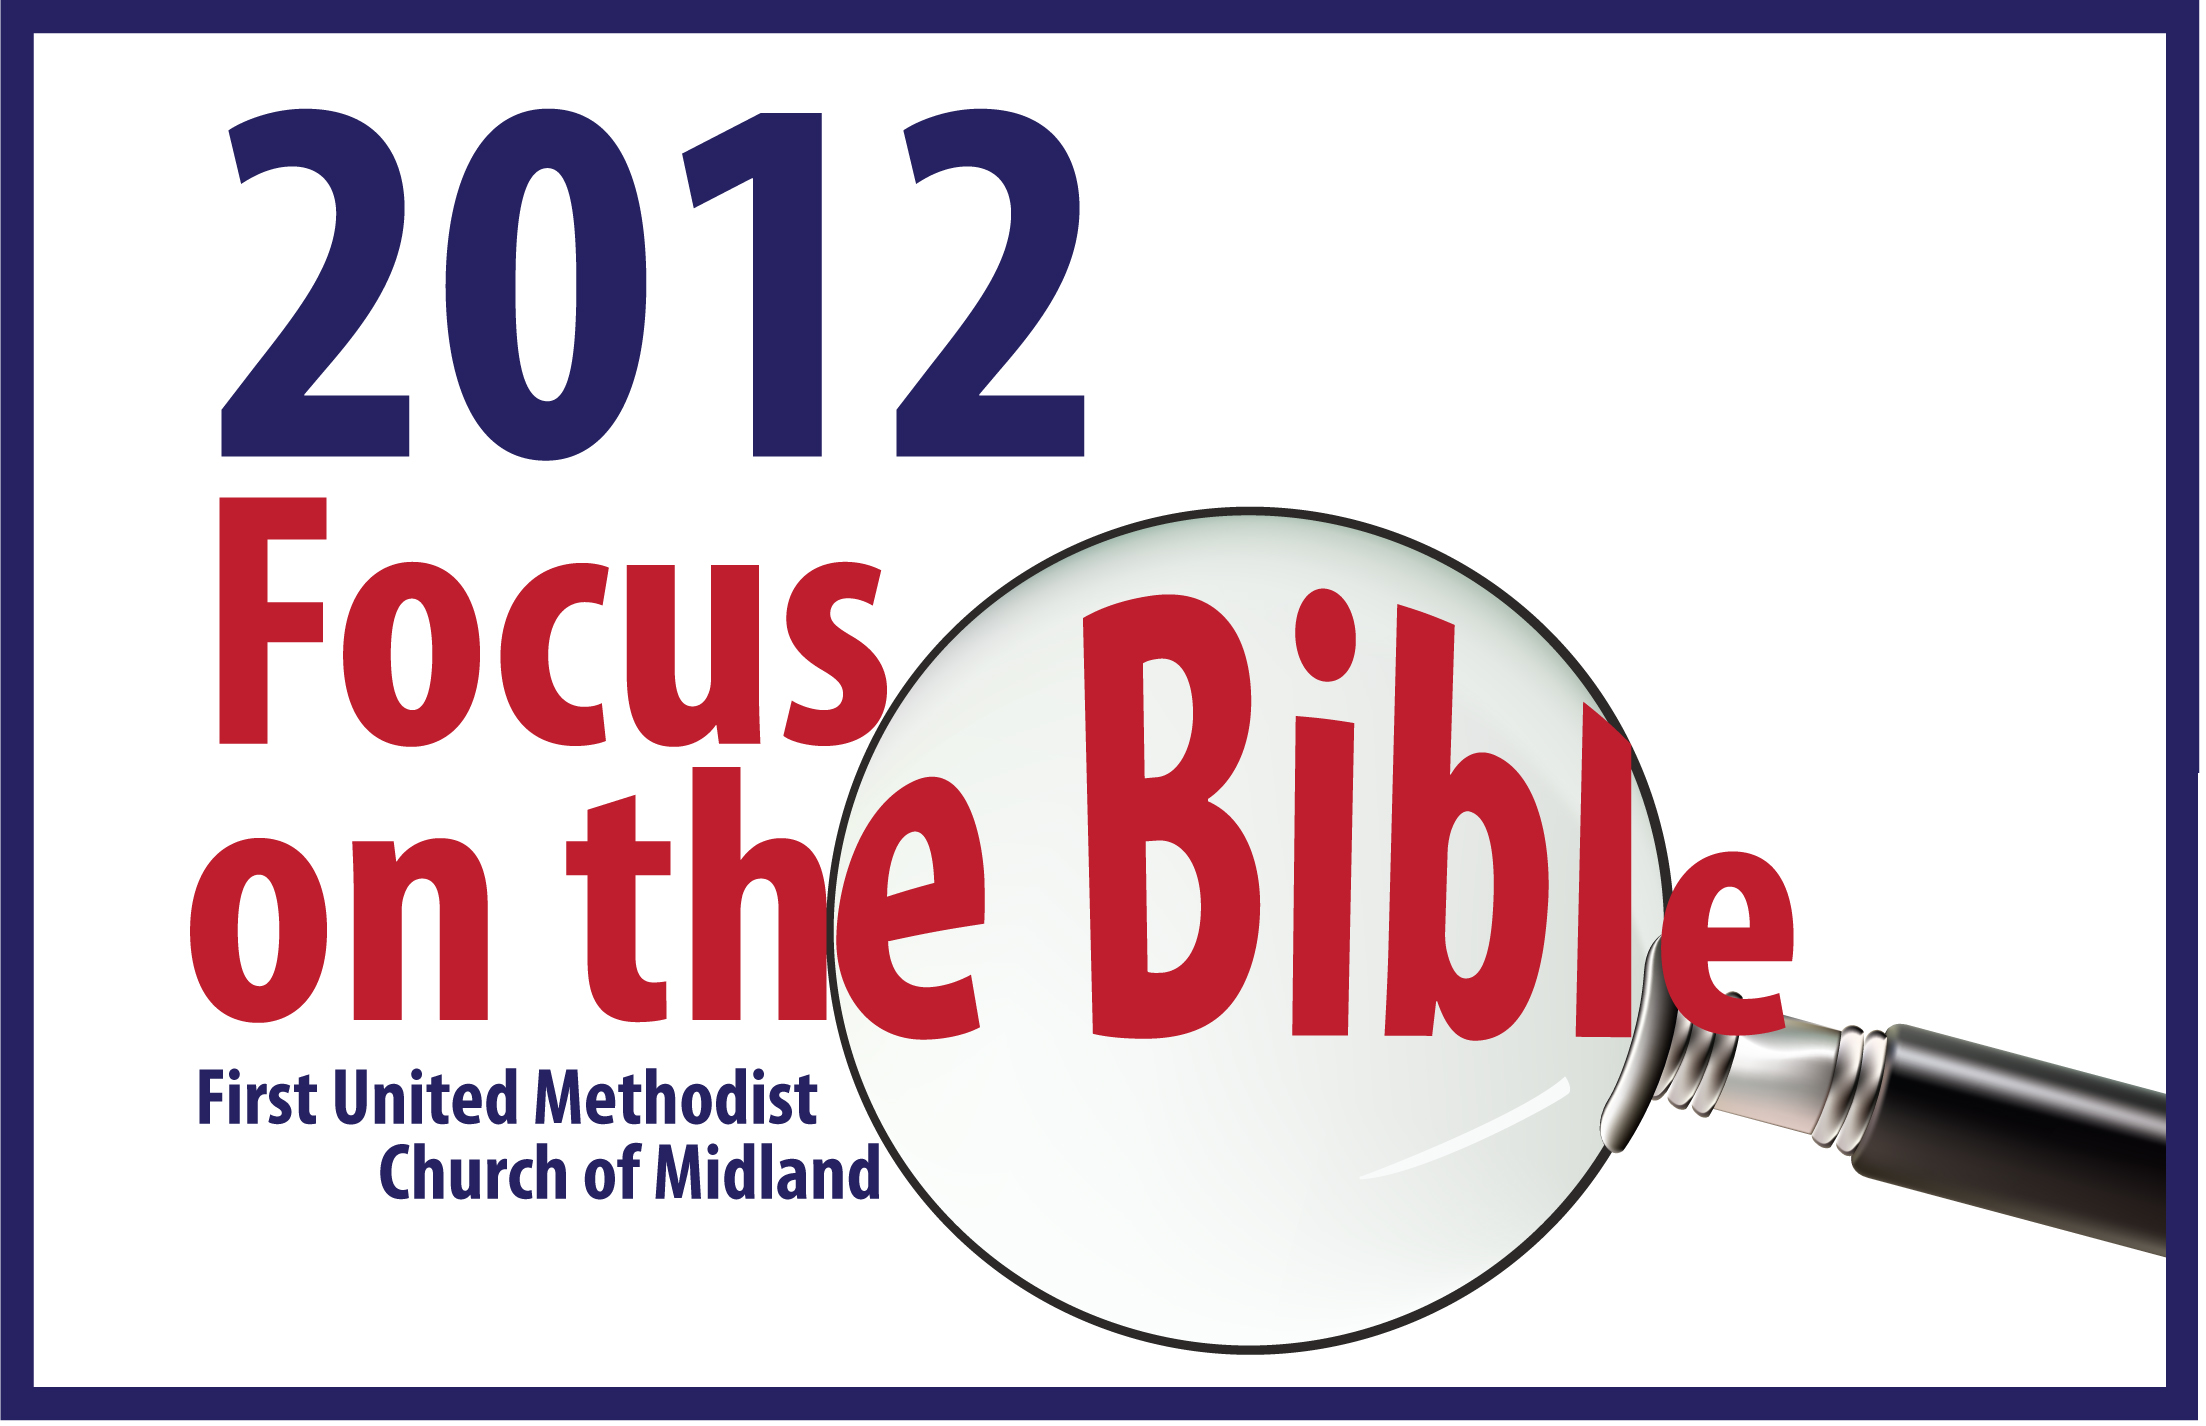 2012 Focus on the Bible